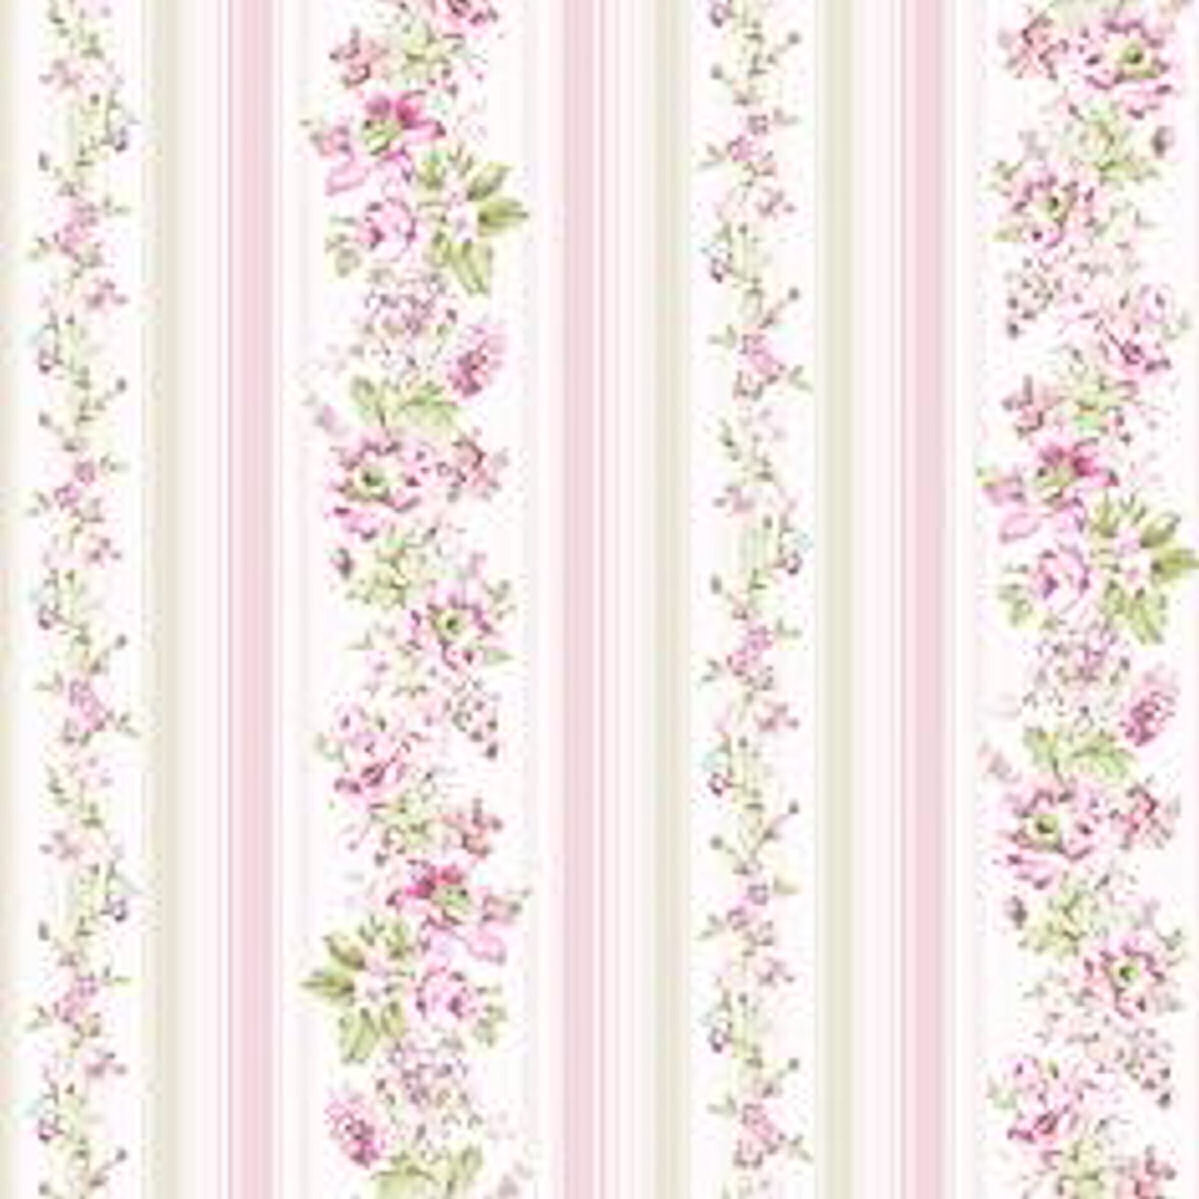 Dollhouse Miniature Pink Floral Computer Printed Wallpaper